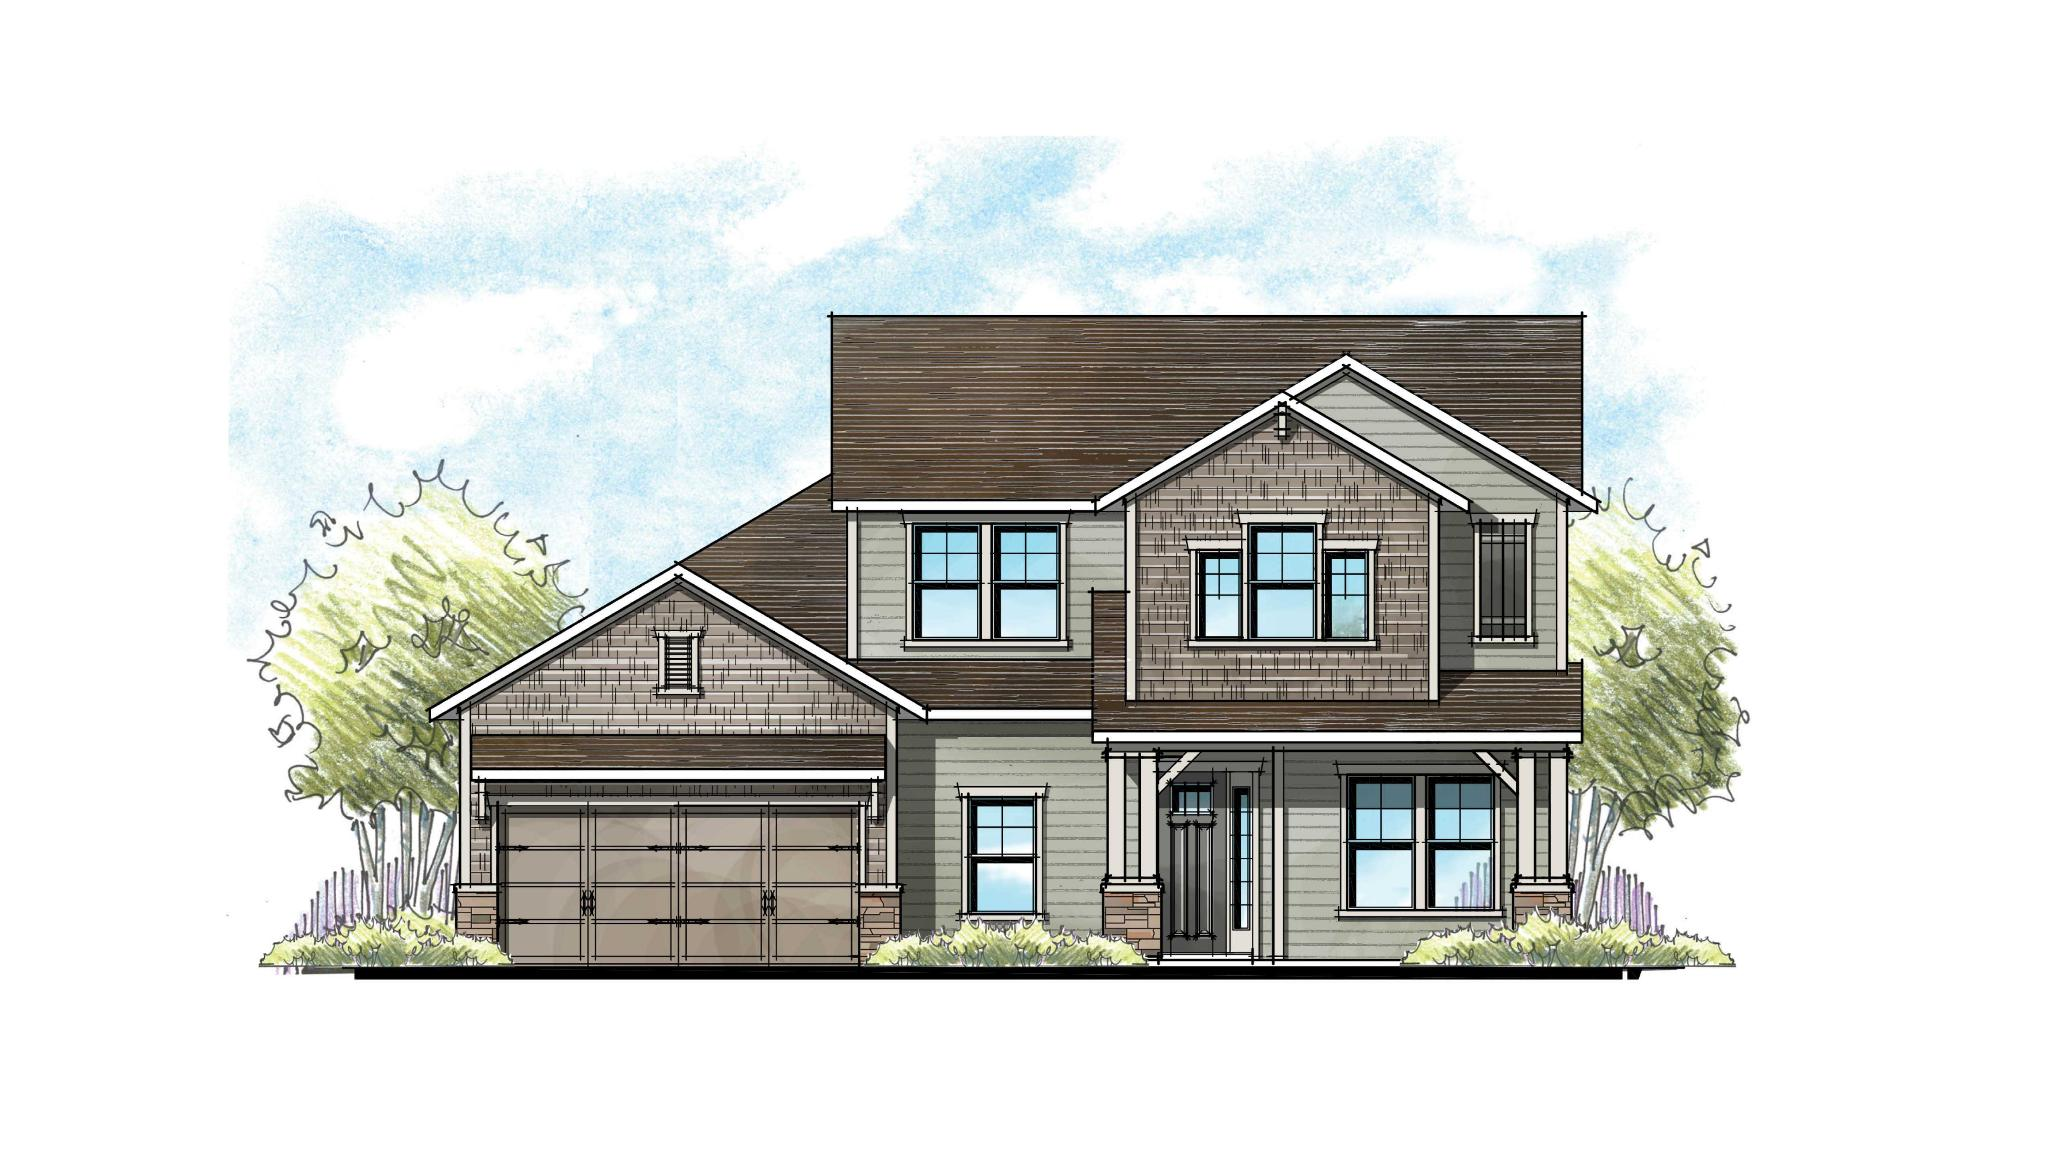 The Lafayette Urban Rustic Elevation 4 2-Car Garage